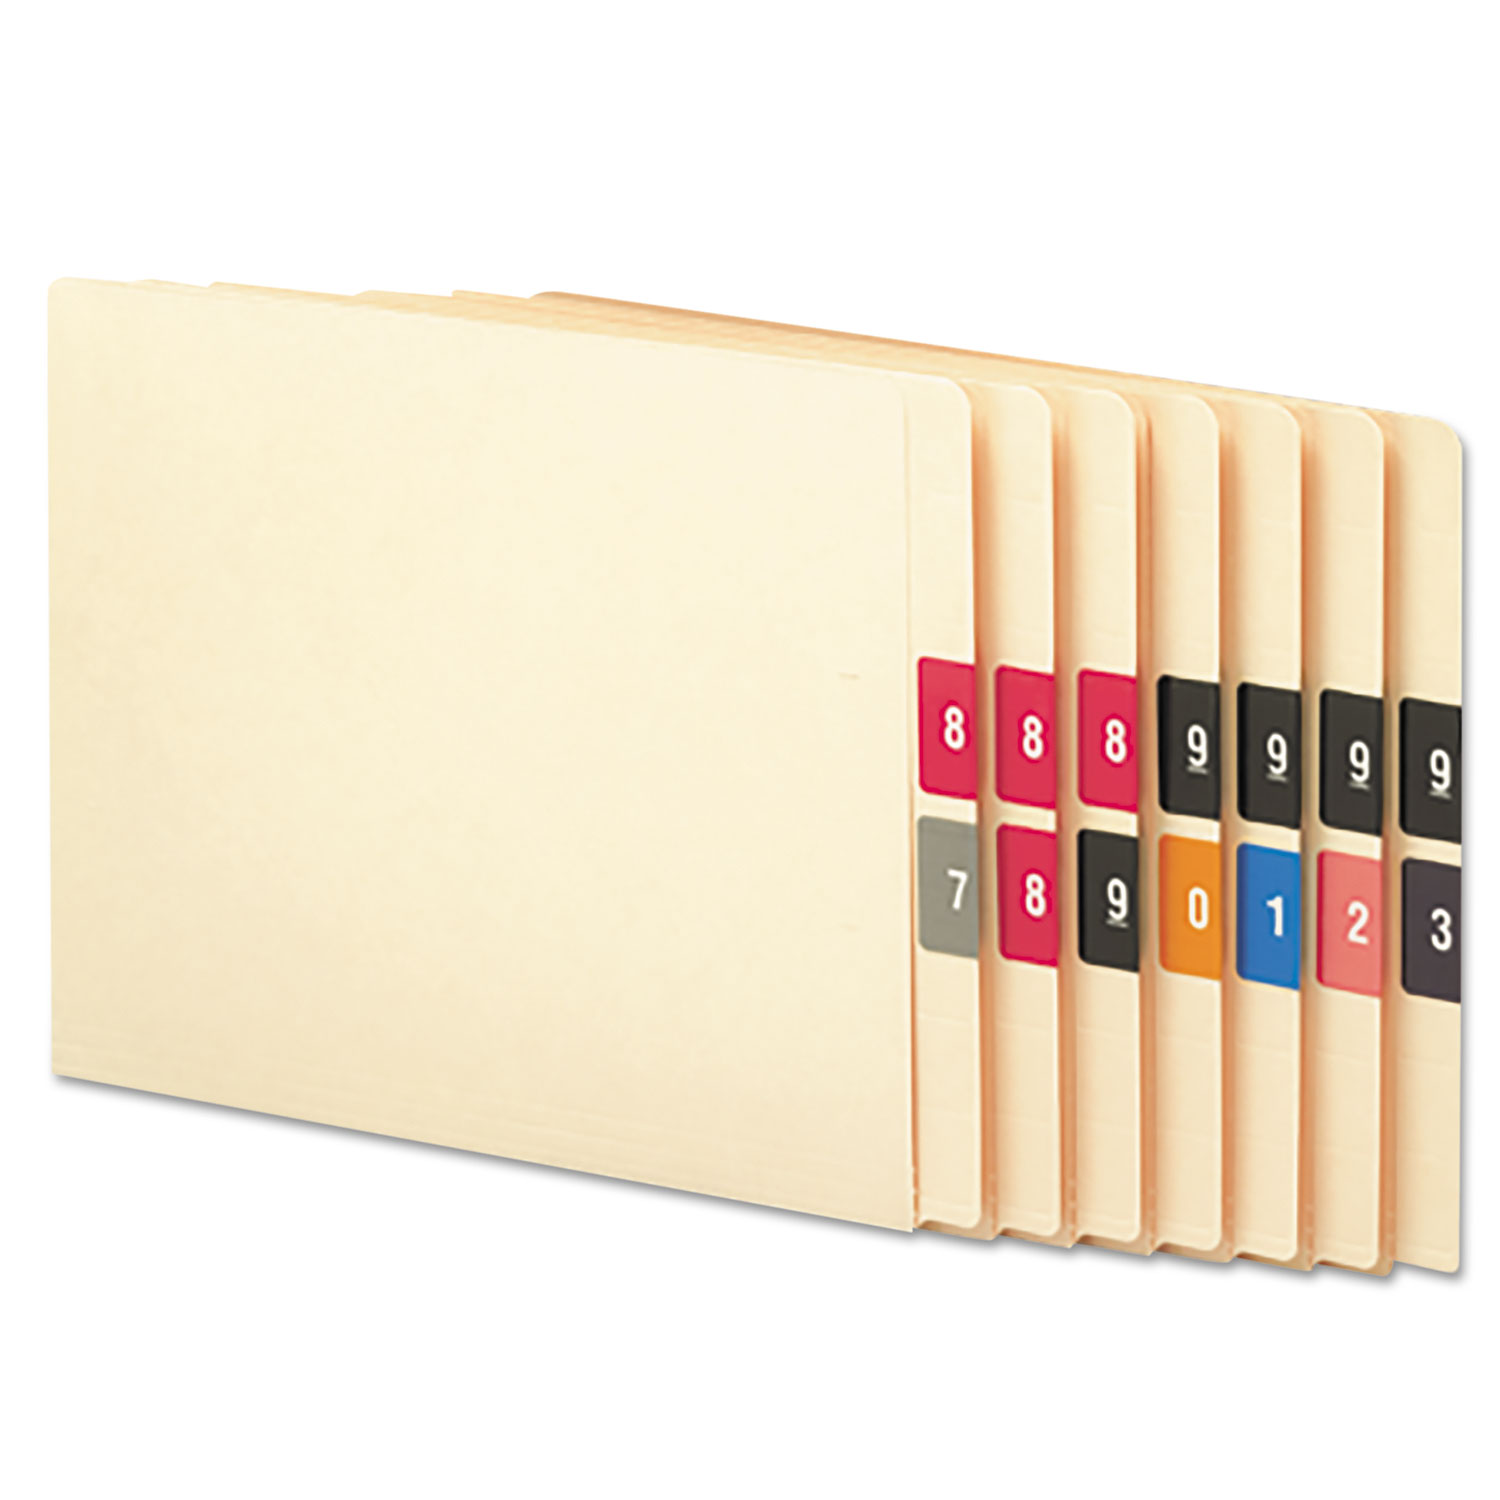 Numerical End Tab File Folder Labels, 0-9, 1.5 x 1.5, Assorted, 250/Roll, 10 Rolls/Box